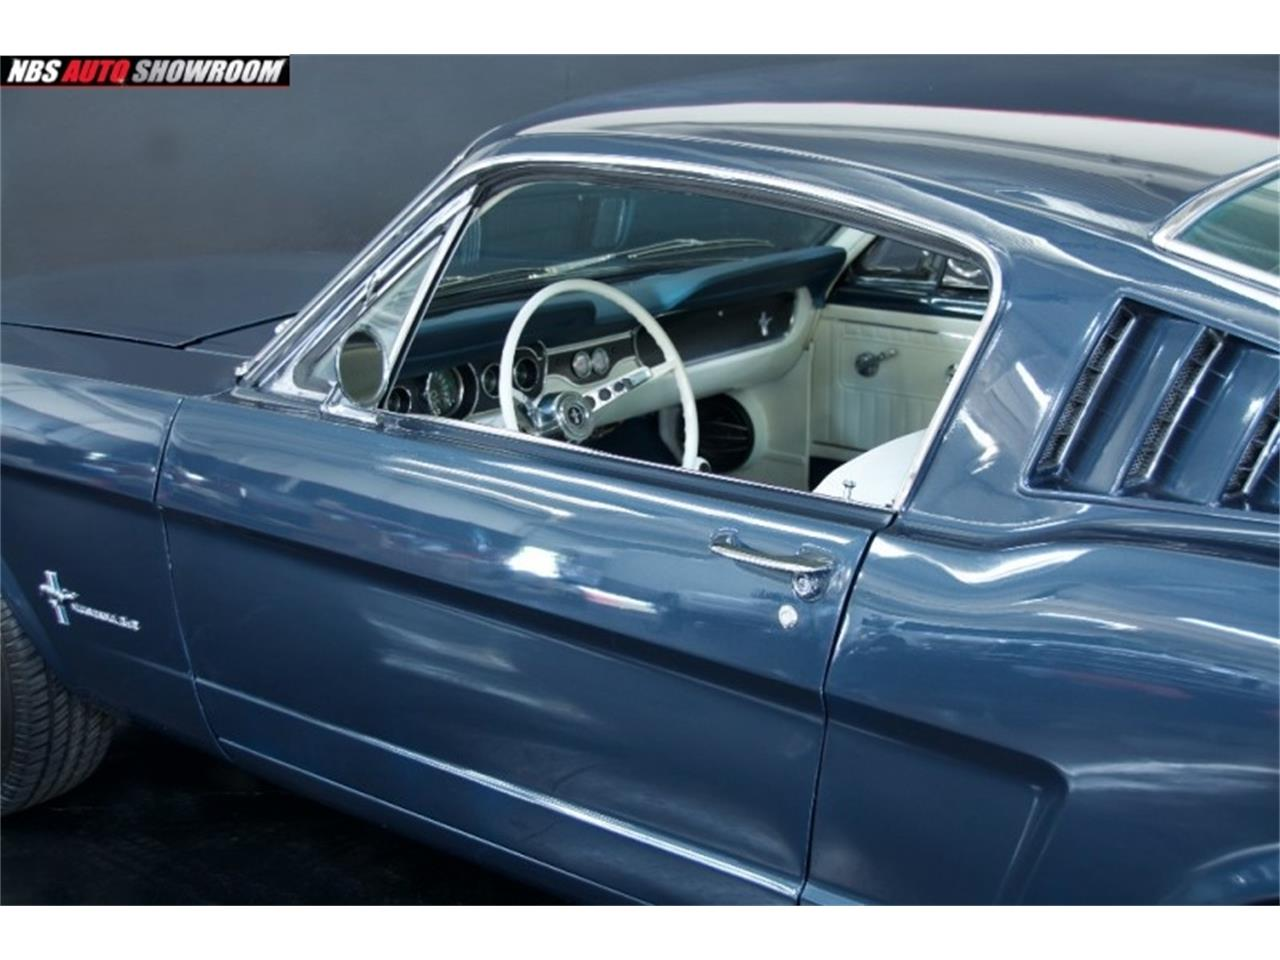 Large Picture of Classic '65 Mustang Offered by NBS Auto Showroom - PHR5